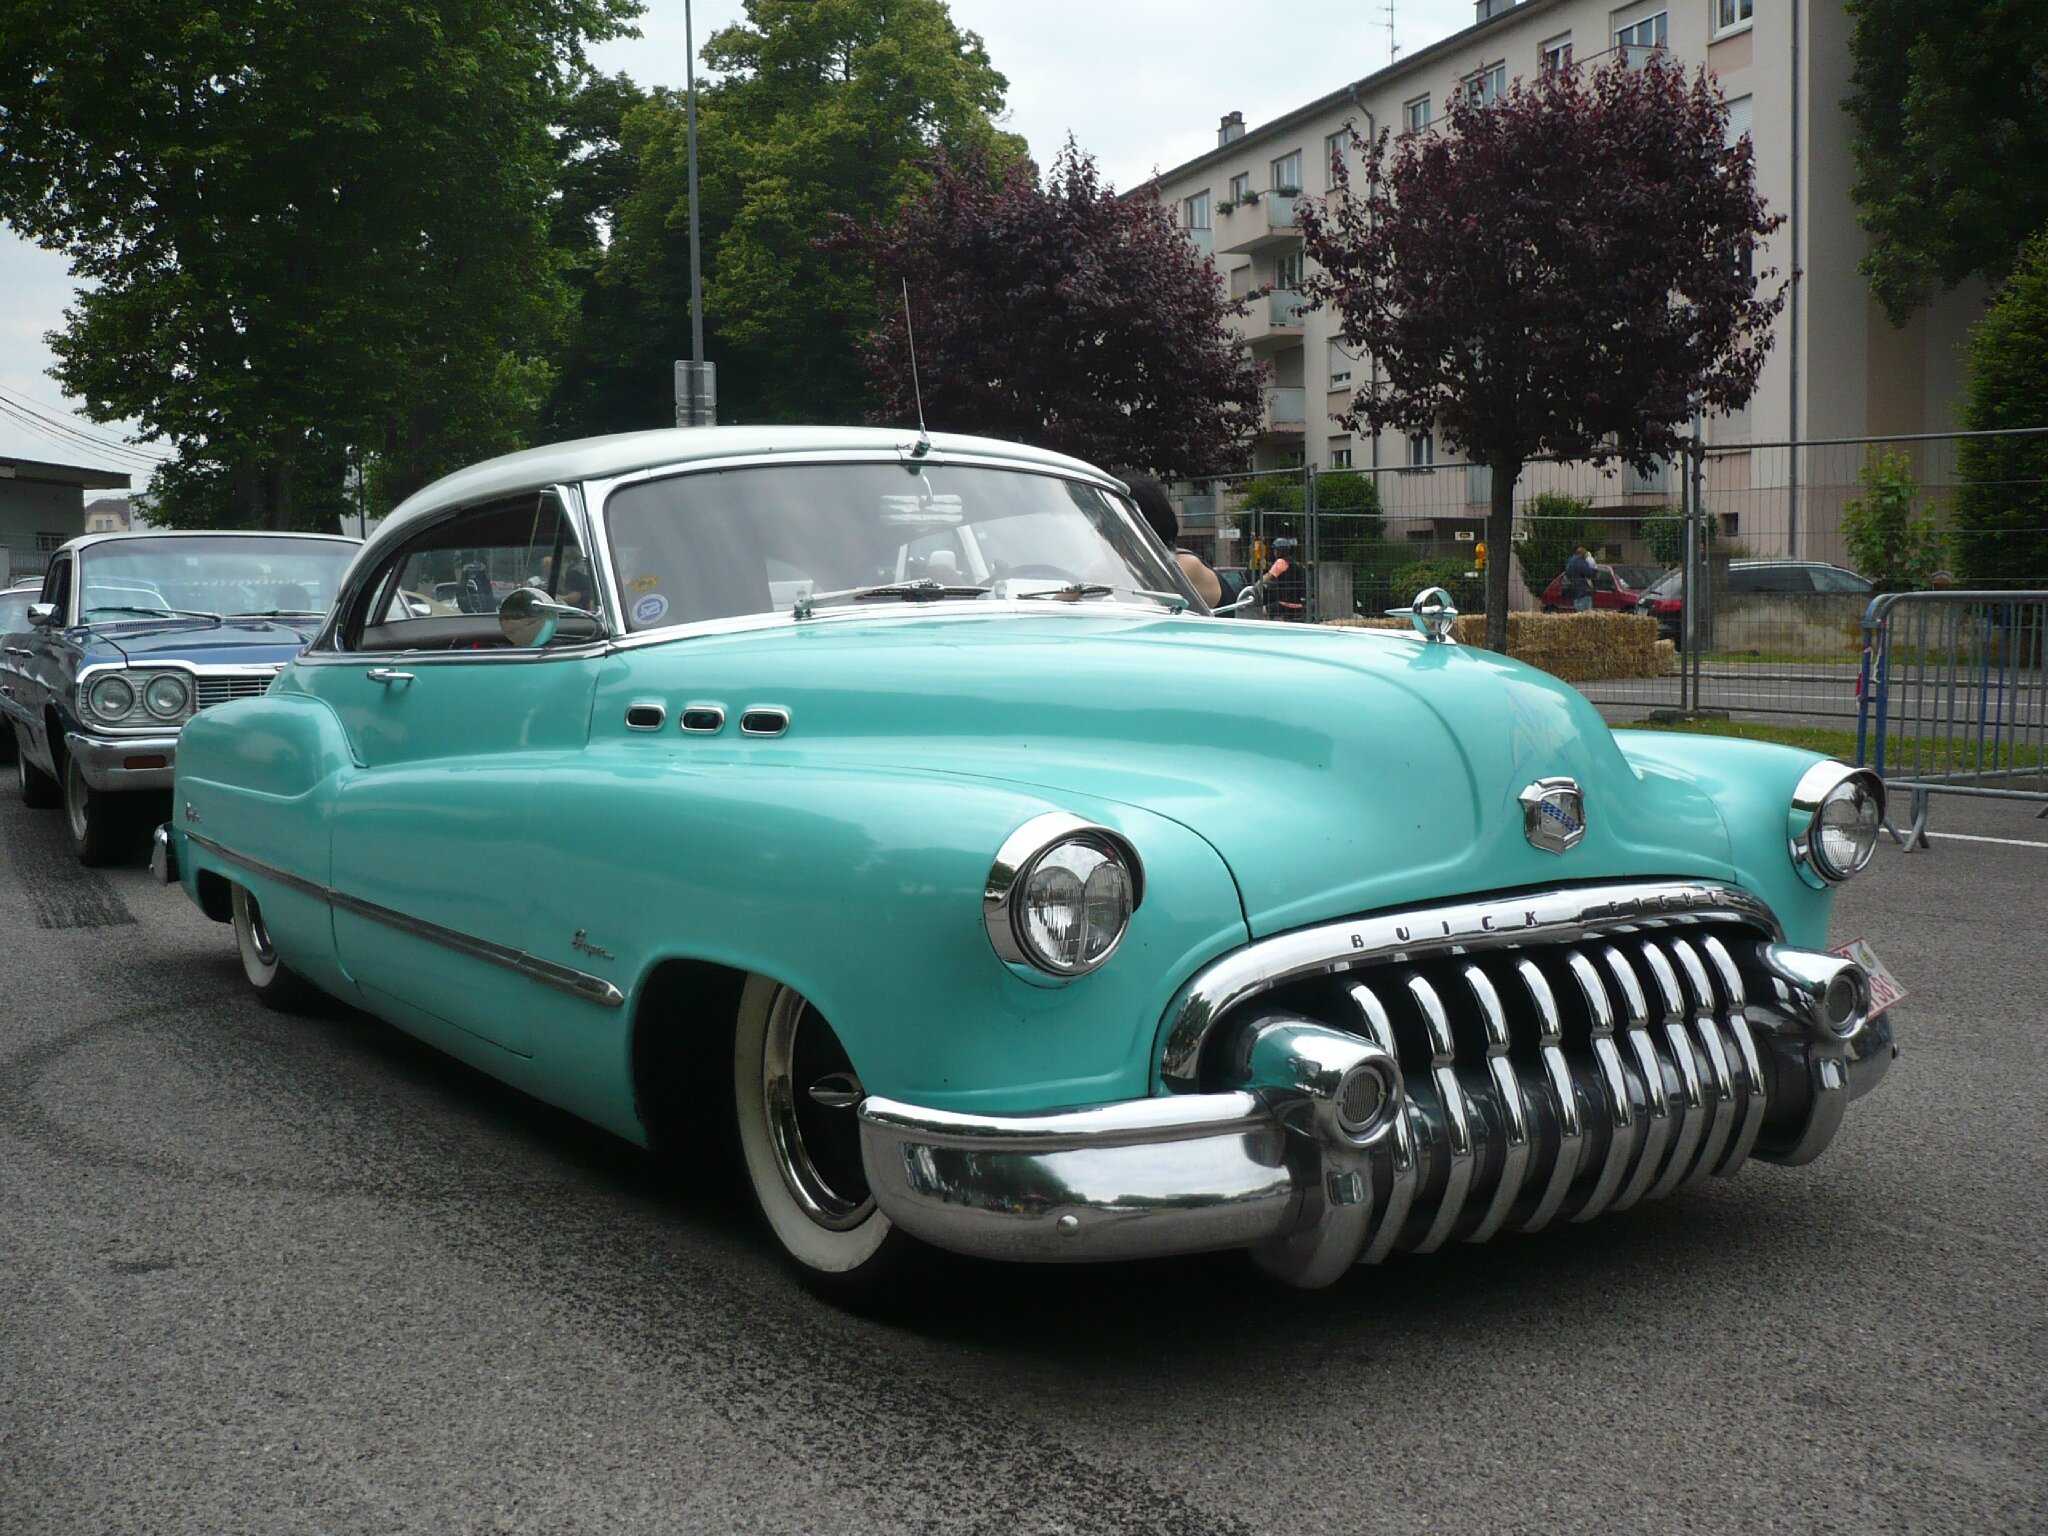 BUICK Super Eight Dynaflow 2door hardtop 1950 Illzach (1)